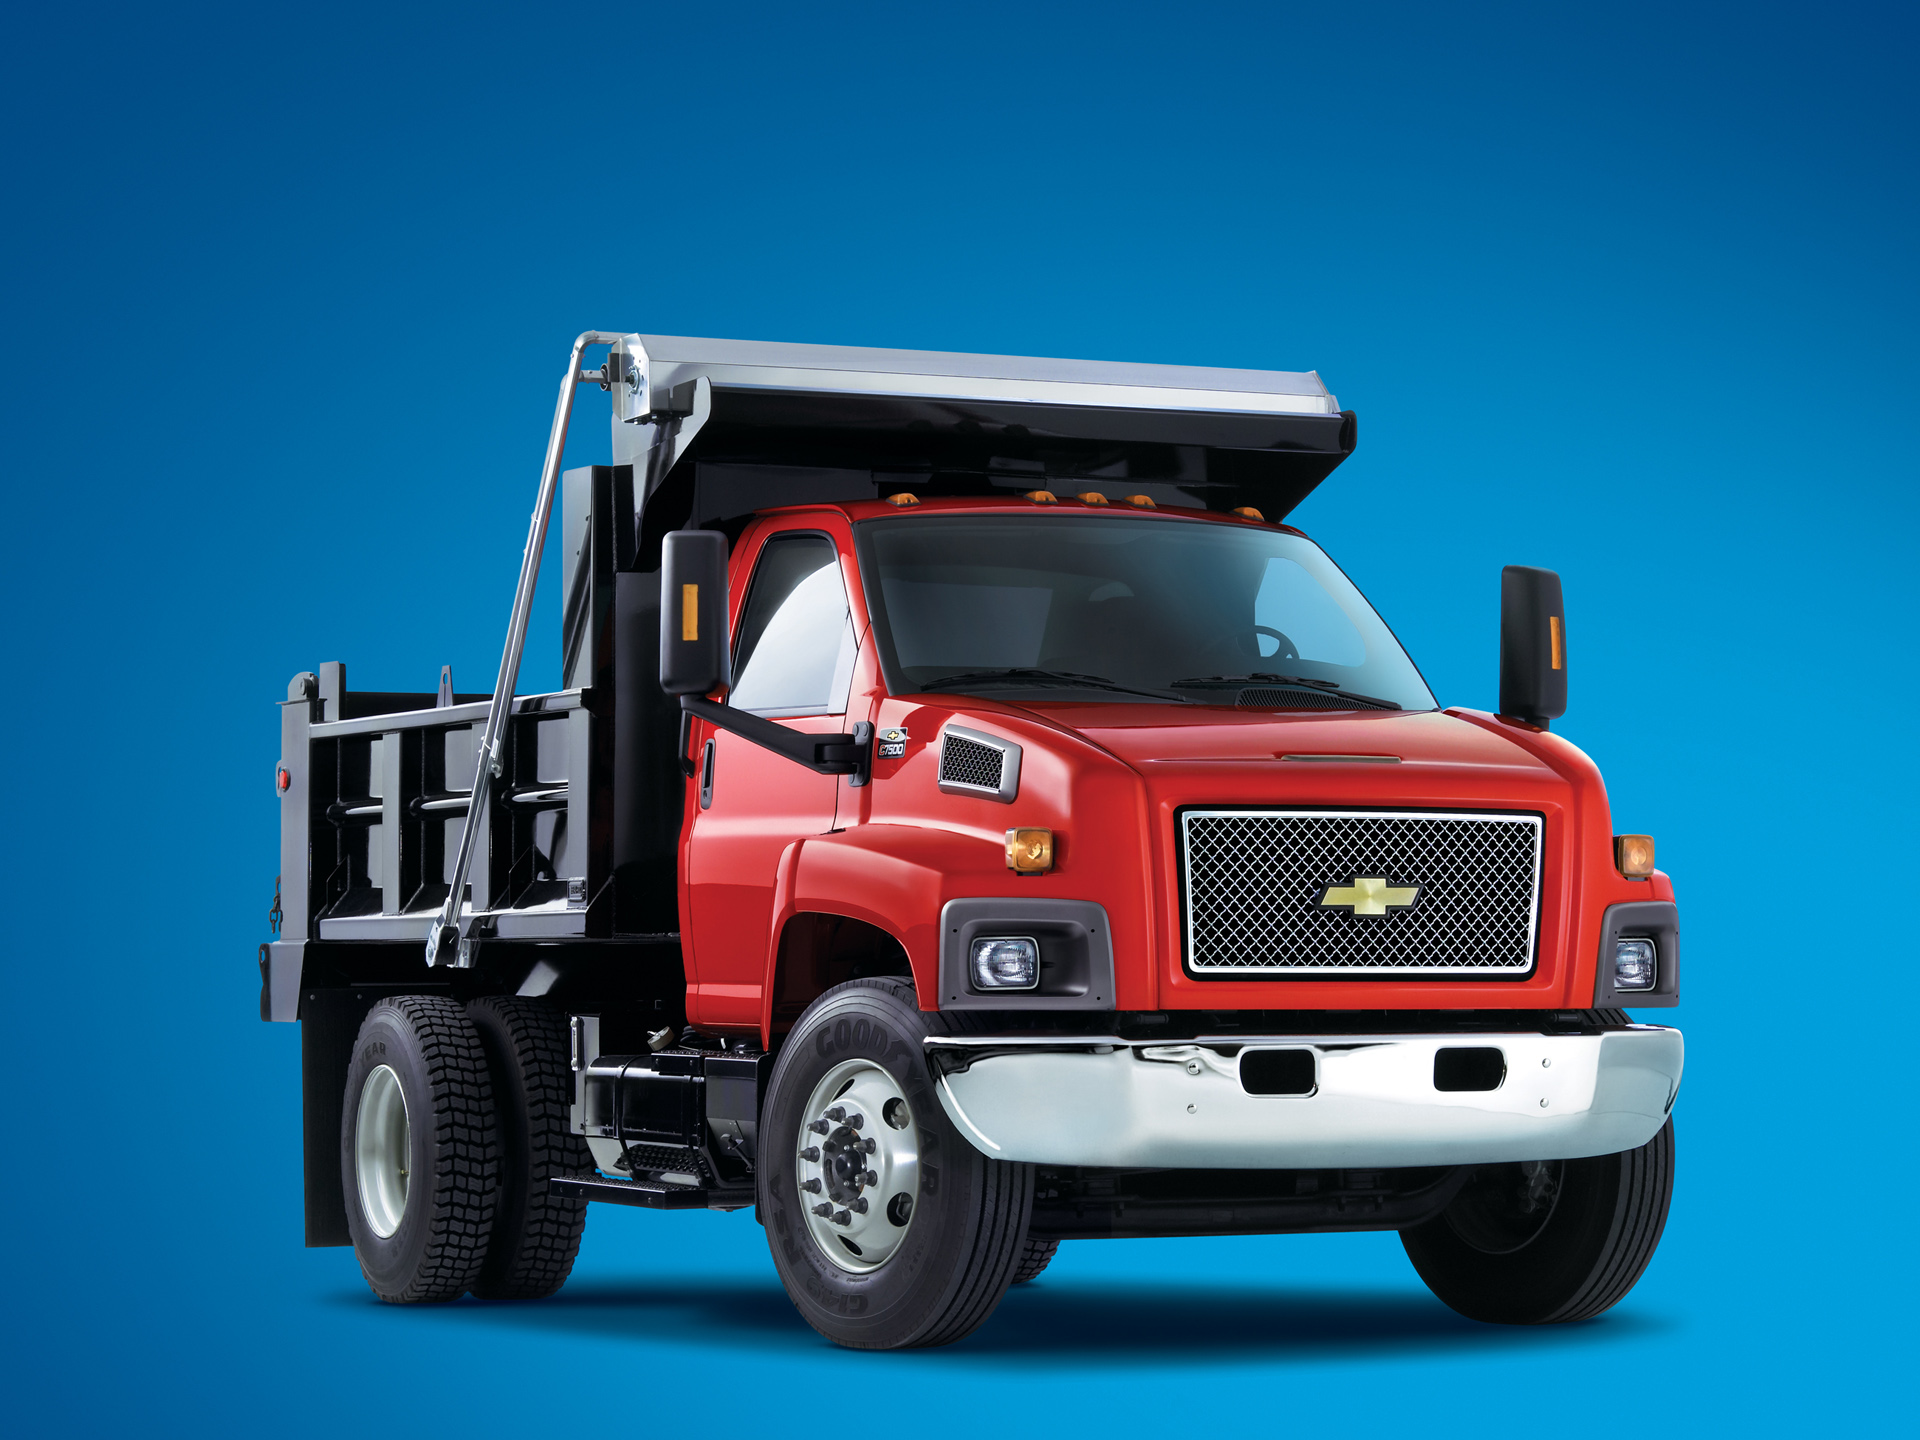 Chevrolet C7500 photos - PhotoGallery with 5 pics| CarsBase.com